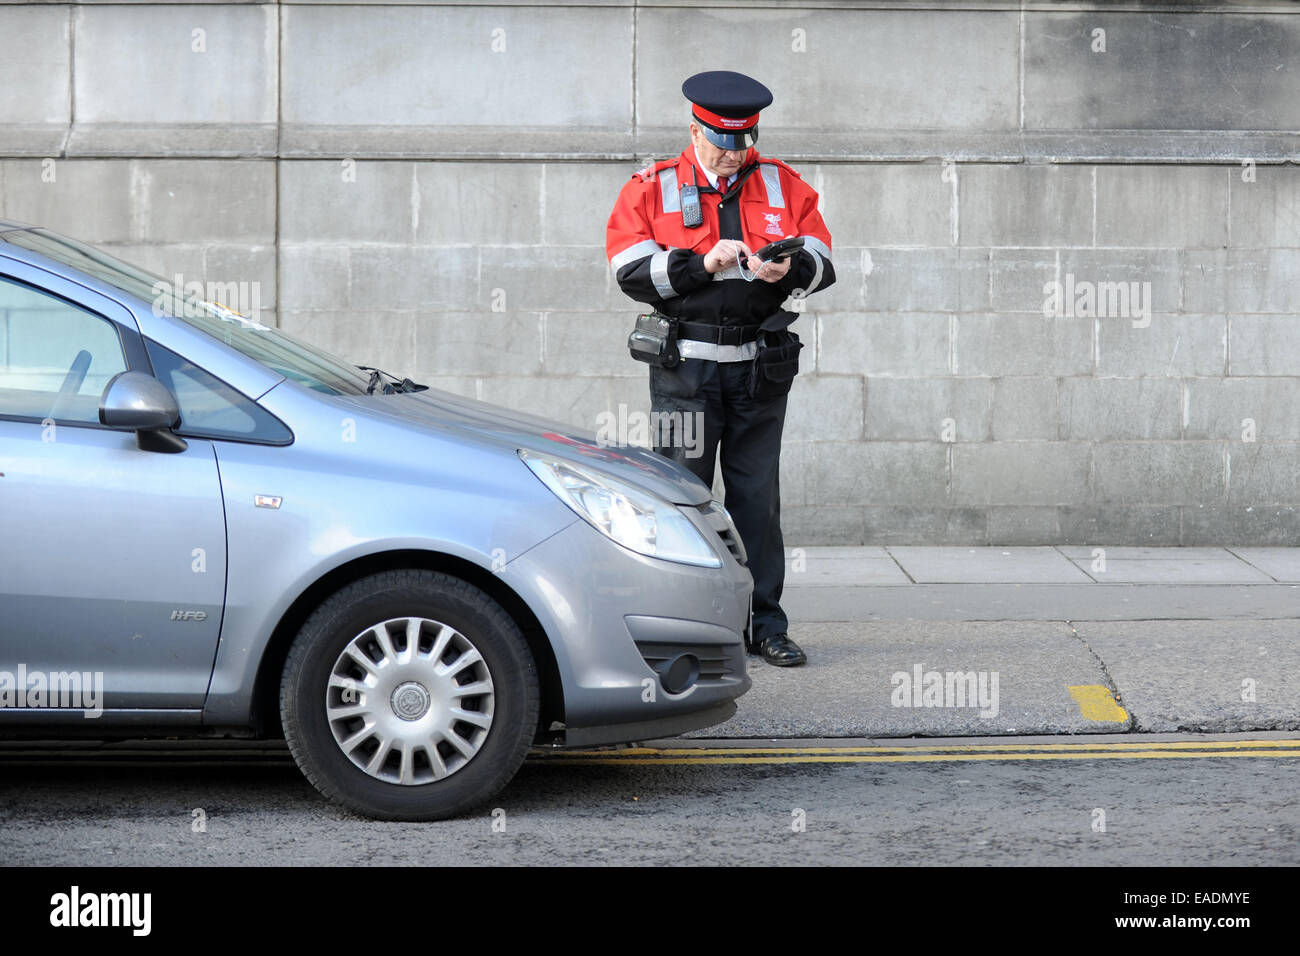 A traffic warden issues a parking ticket to an illegally parked car. - Stock Image